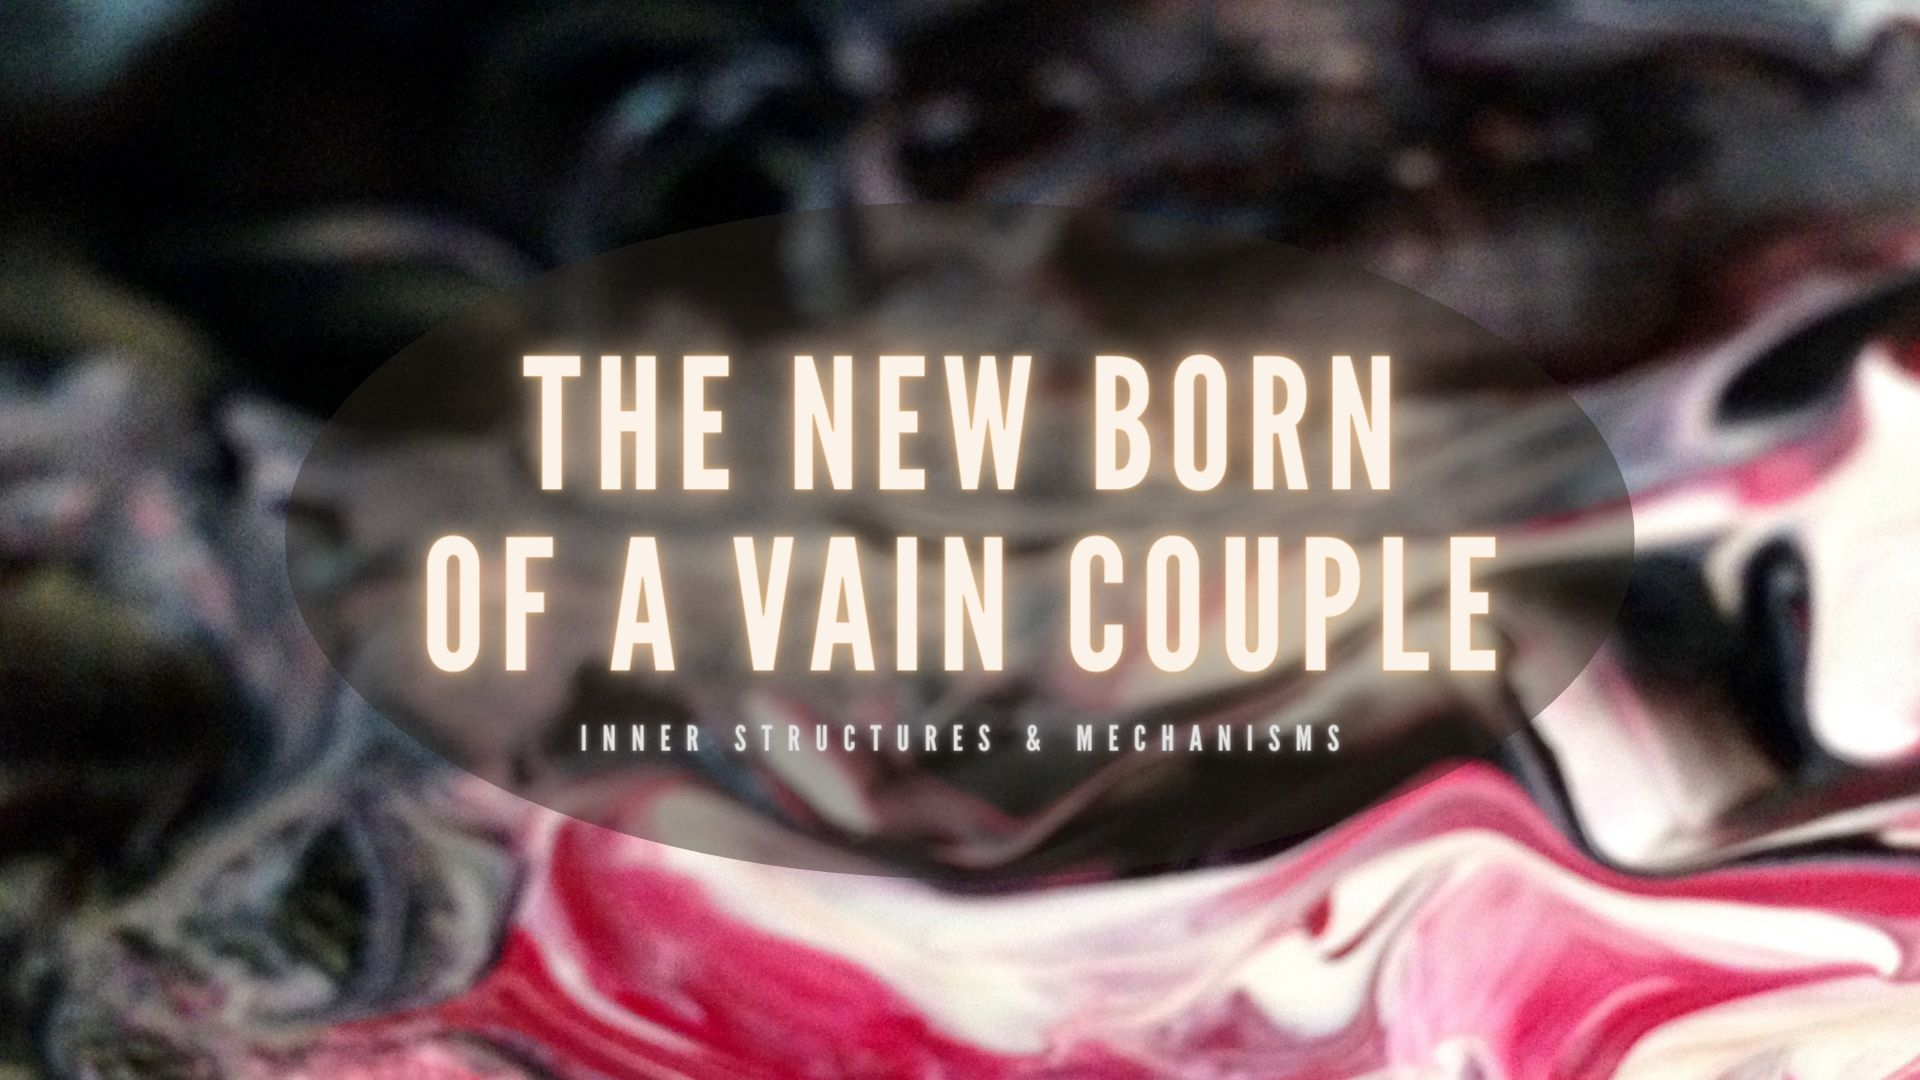 THE NEW BORN OF A VAIN COUPLE | Vanity